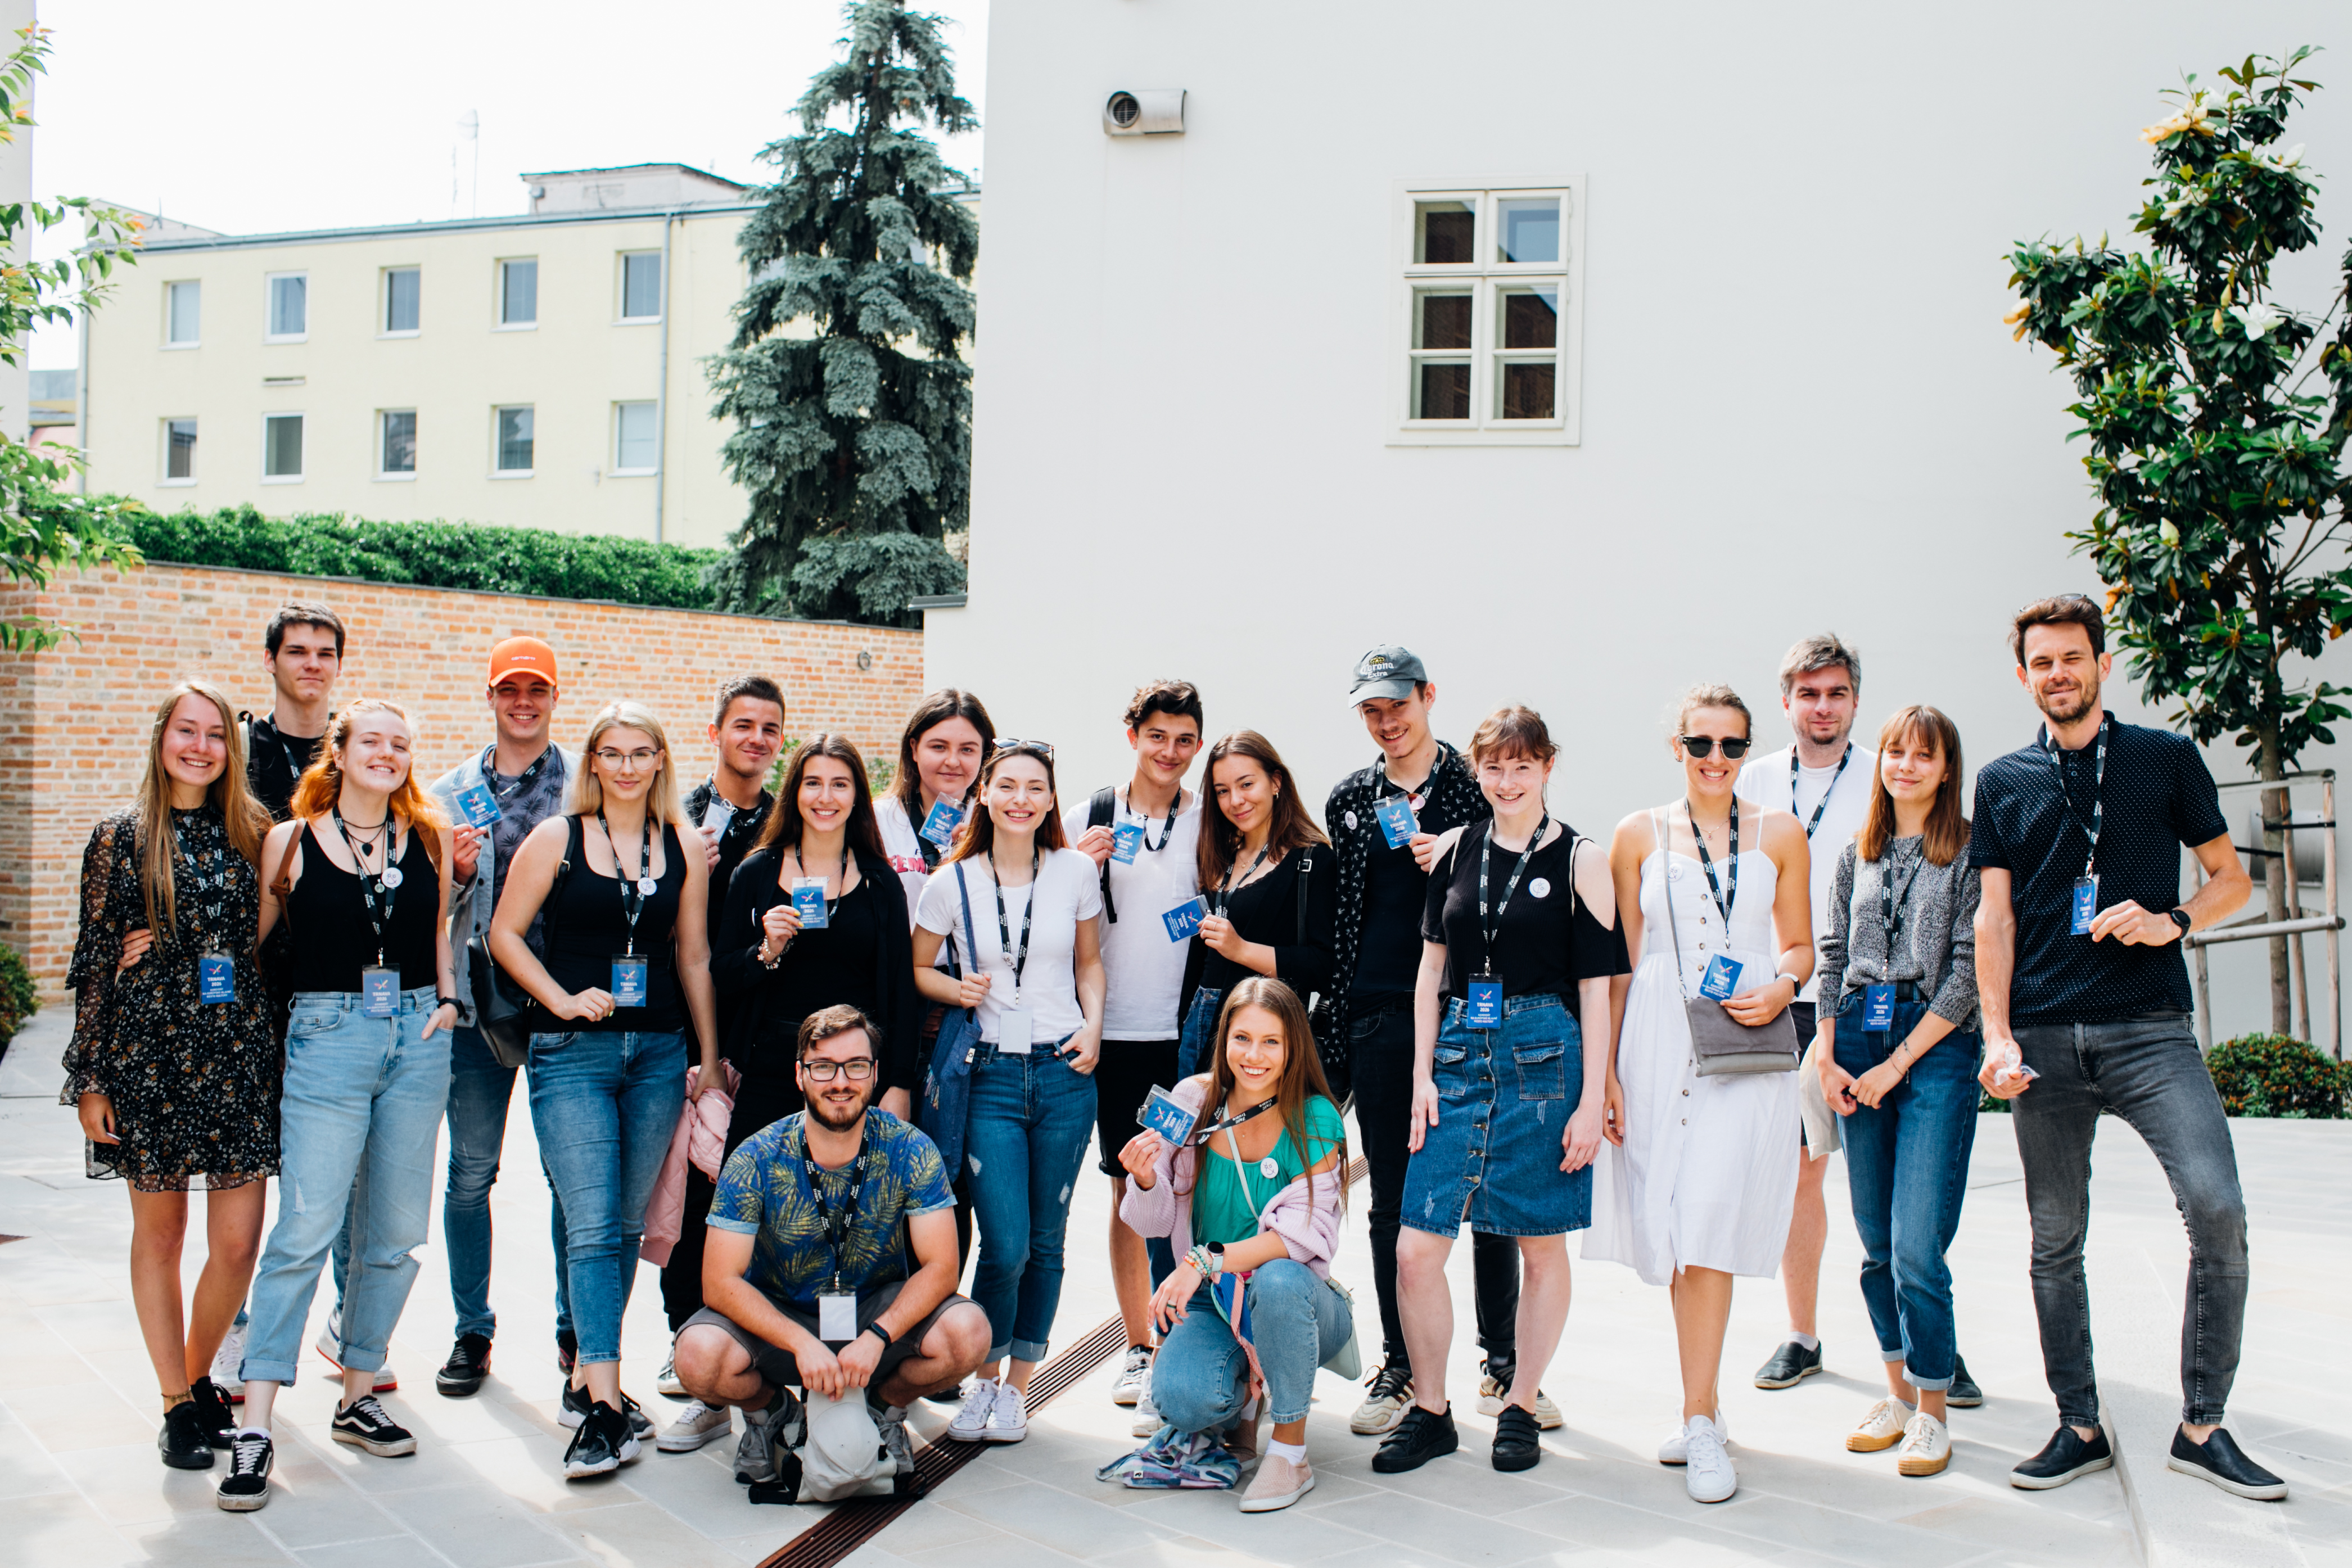 We asked a thousand of people about the life in Trnava